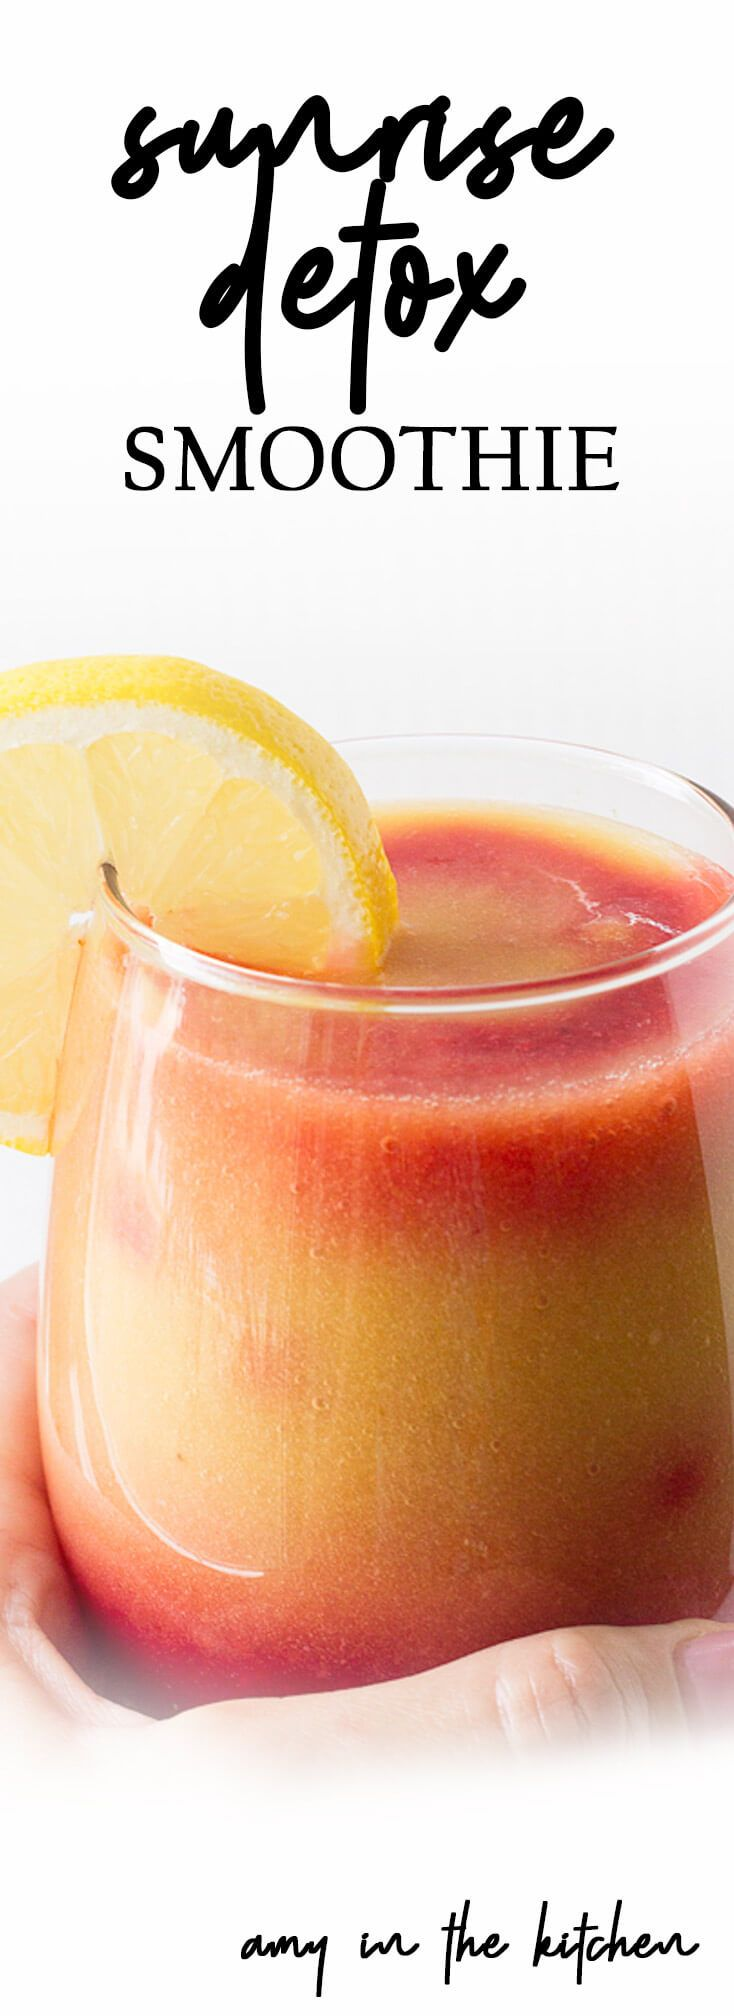 Sunrise Detox Smoothie - Amy in the Kitchen